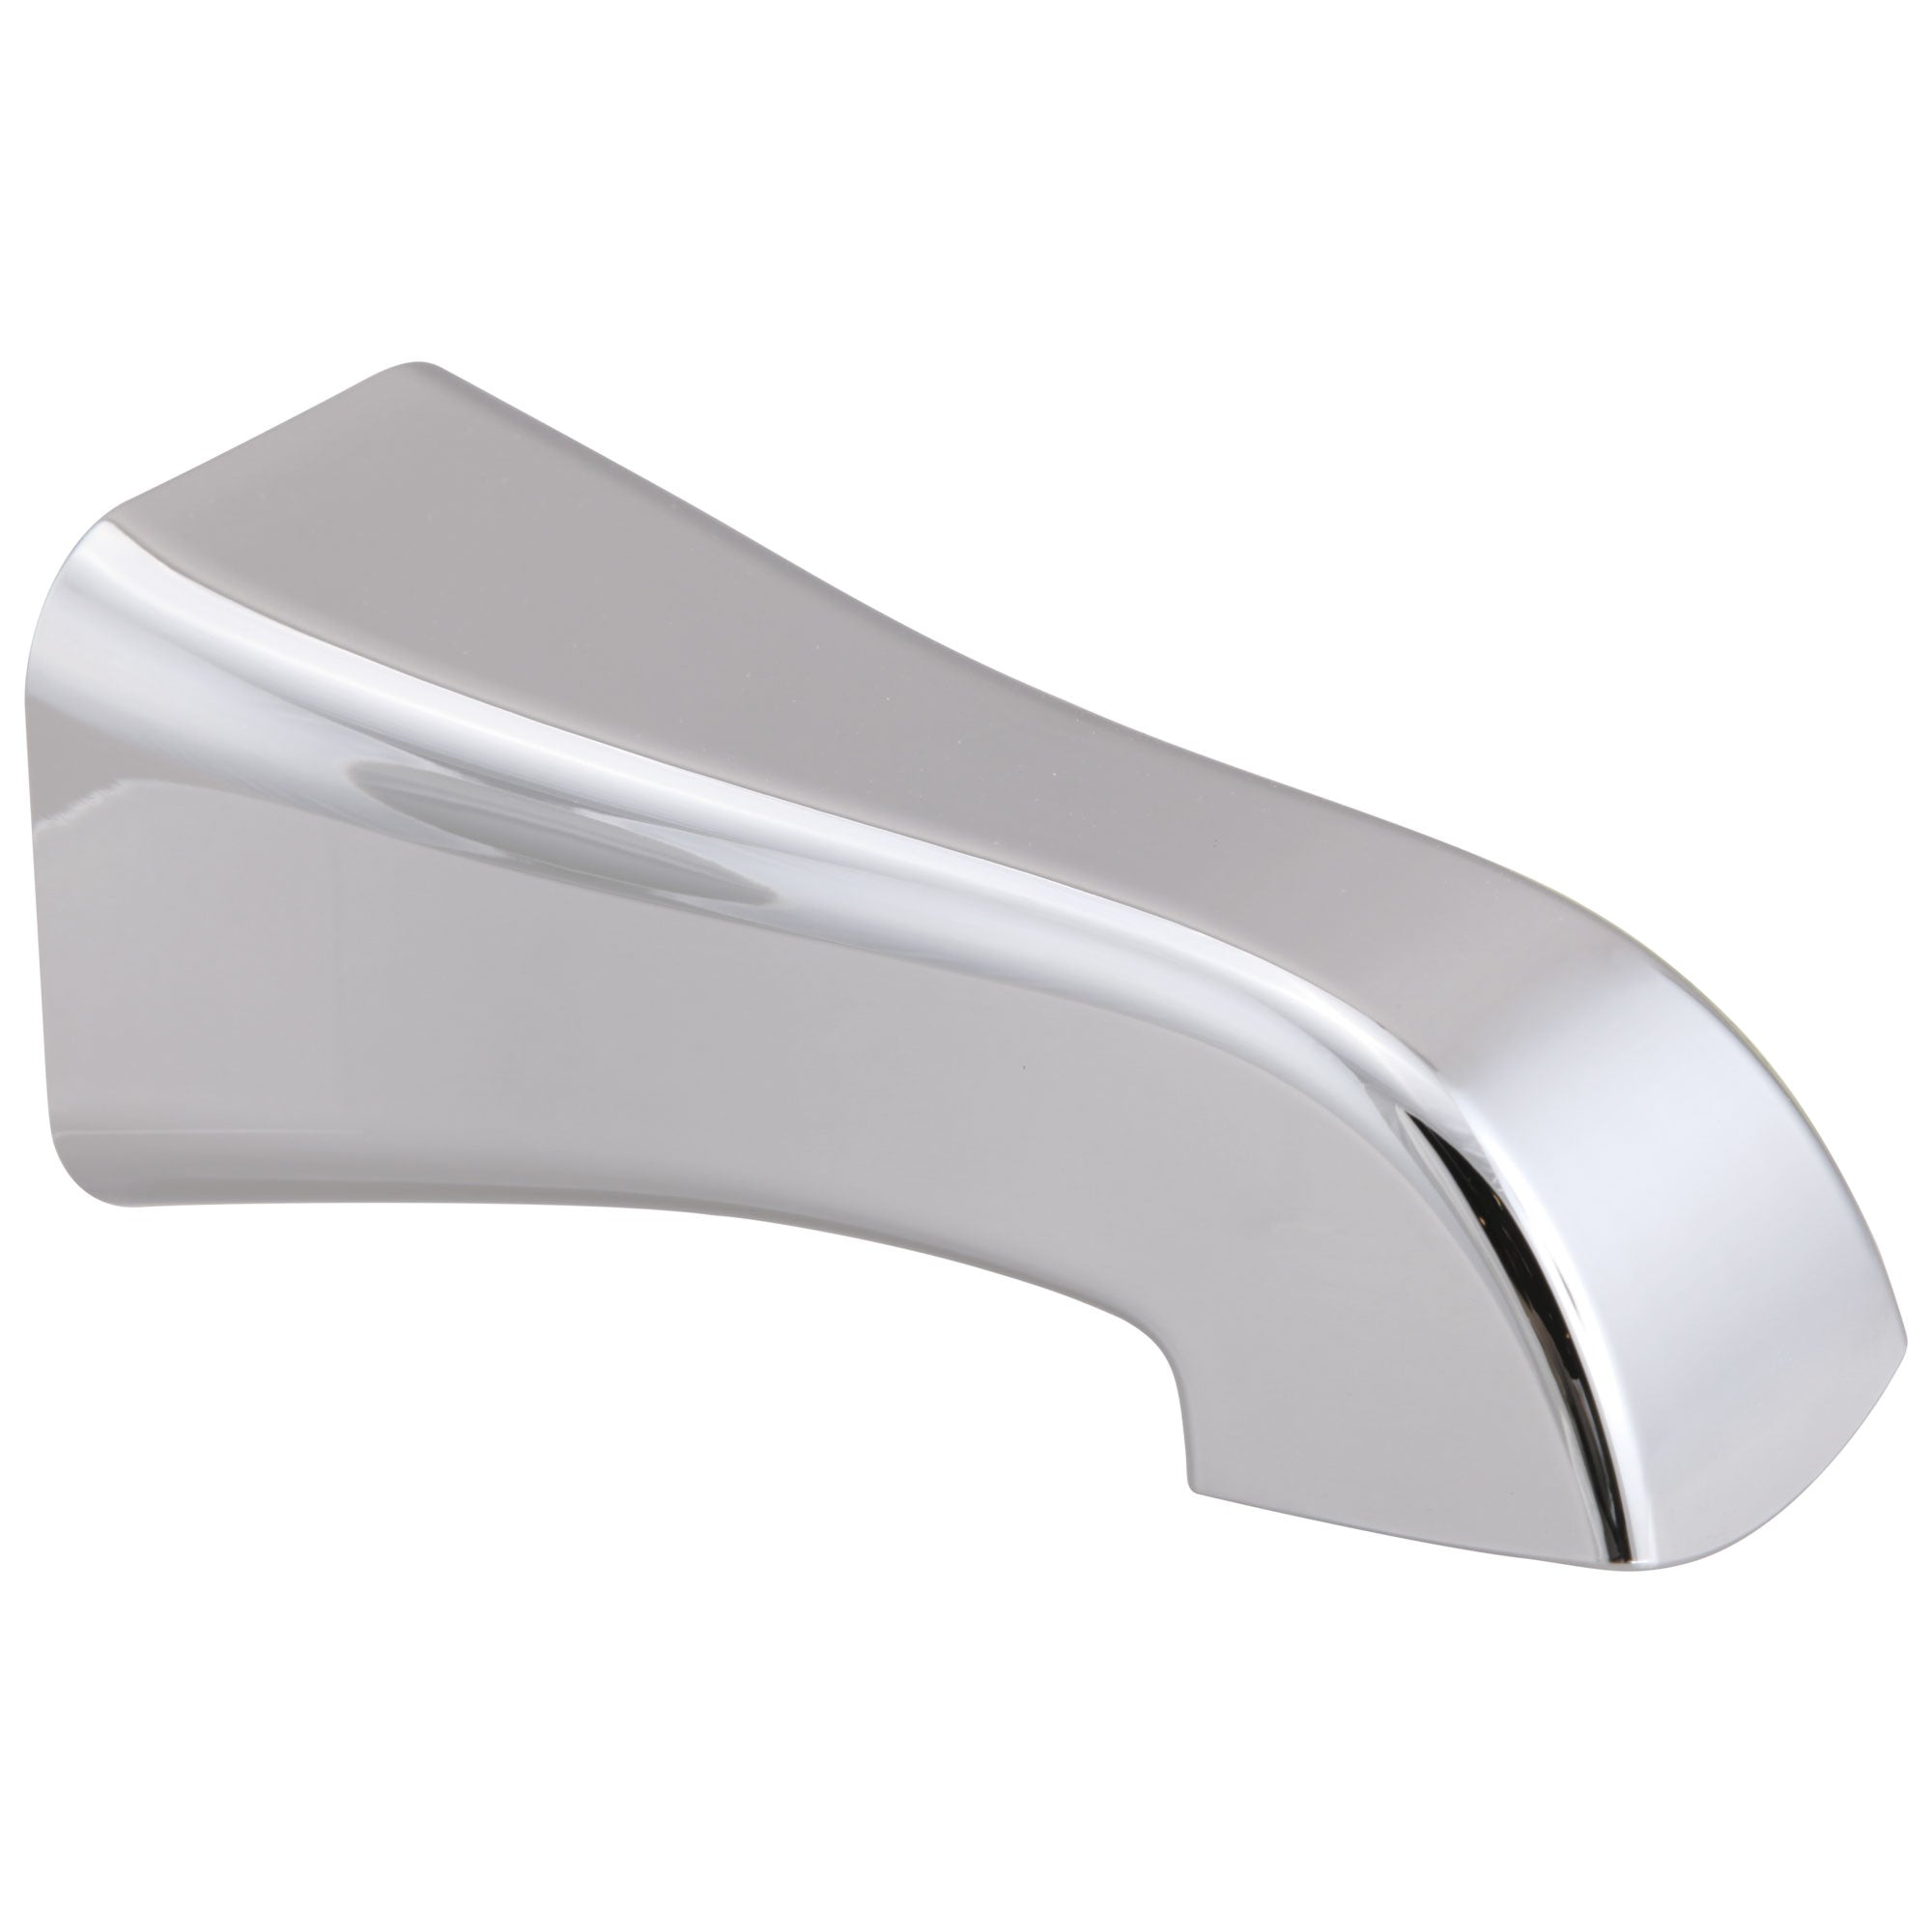 Delta Tesla Collection Chrome Finish Non Diverter Wall Mount Bath Tub Spout DRP78736